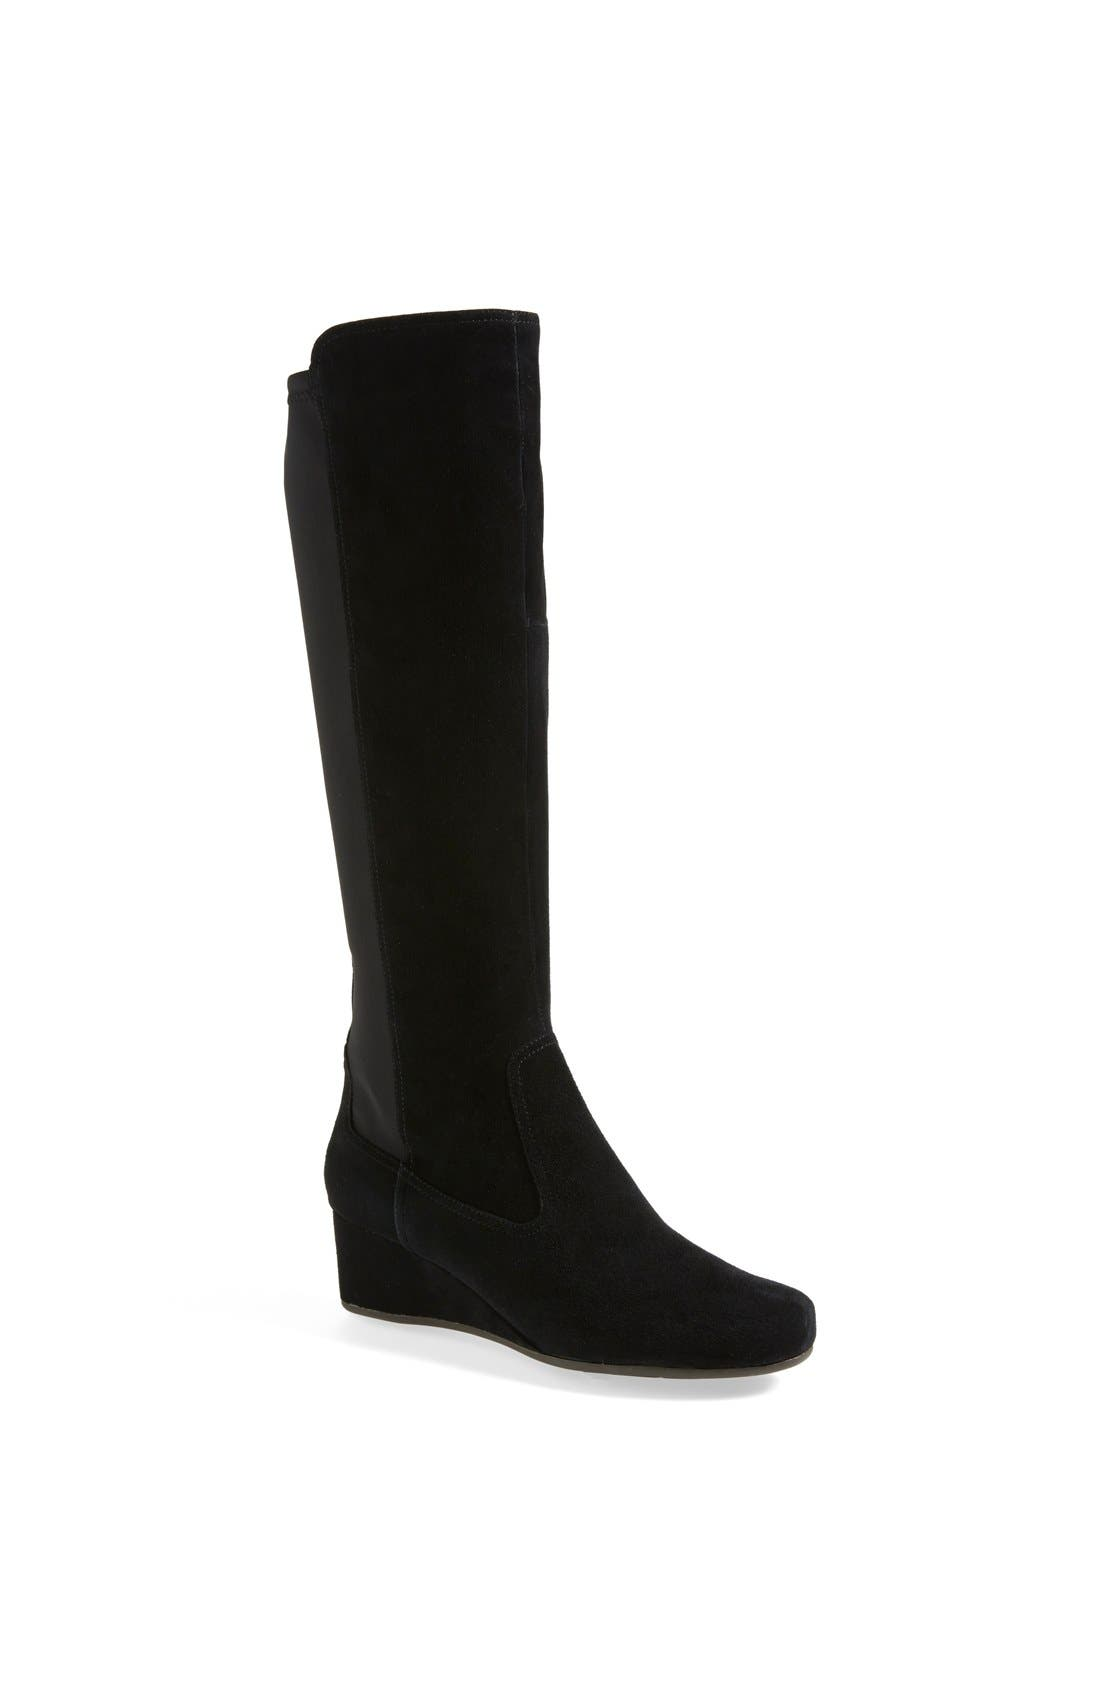 Main Image - Rockport 'Total Motion' Knee High Wedge Boot (Women)